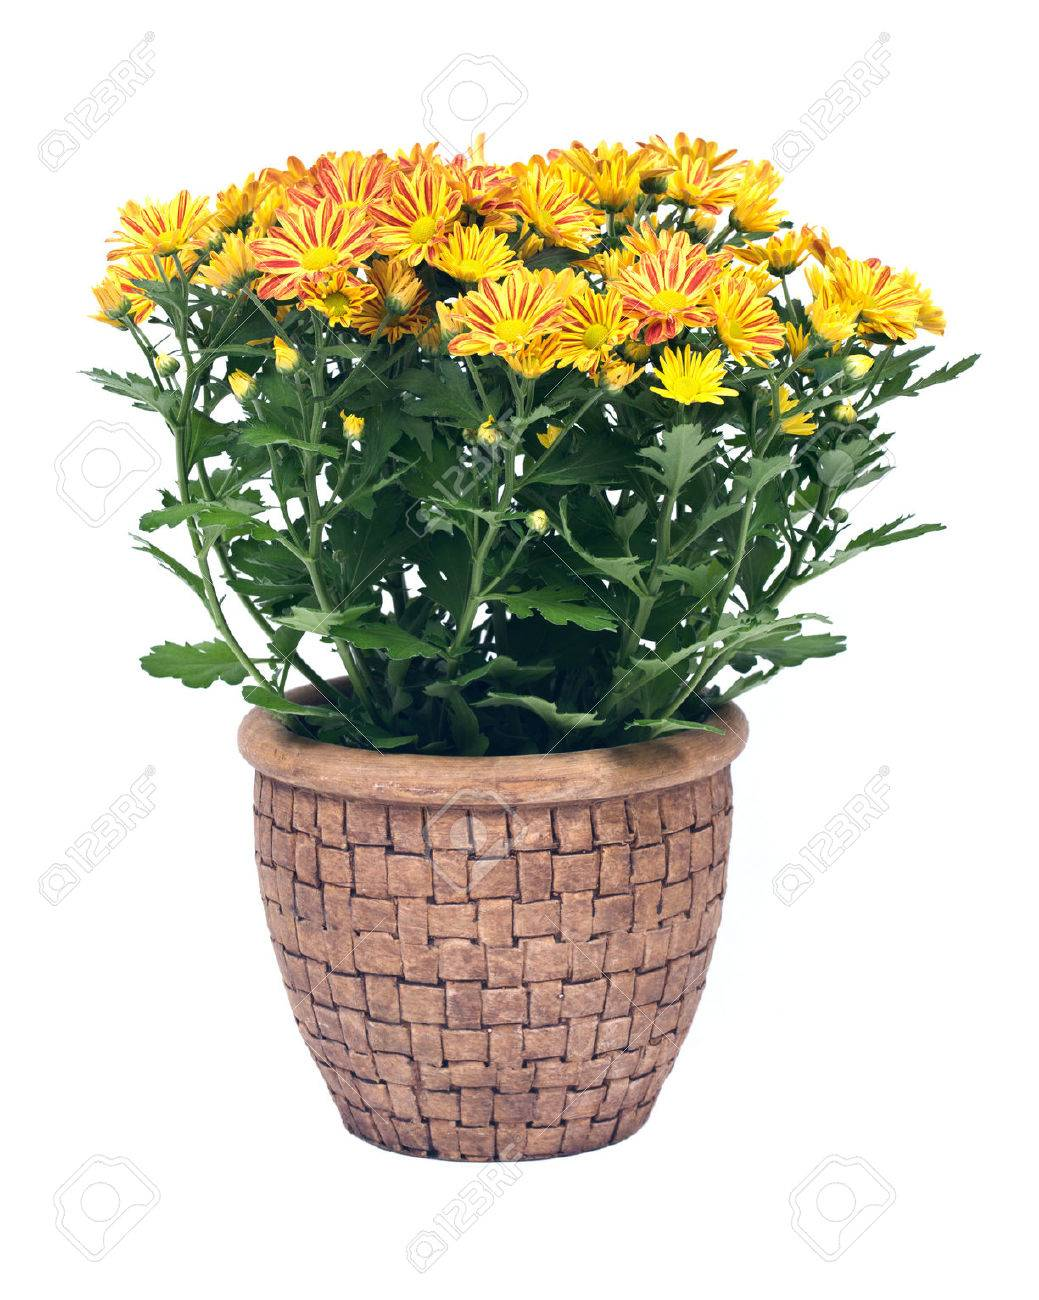 Fall mums flowers in clay pot separated on white background - 64012231